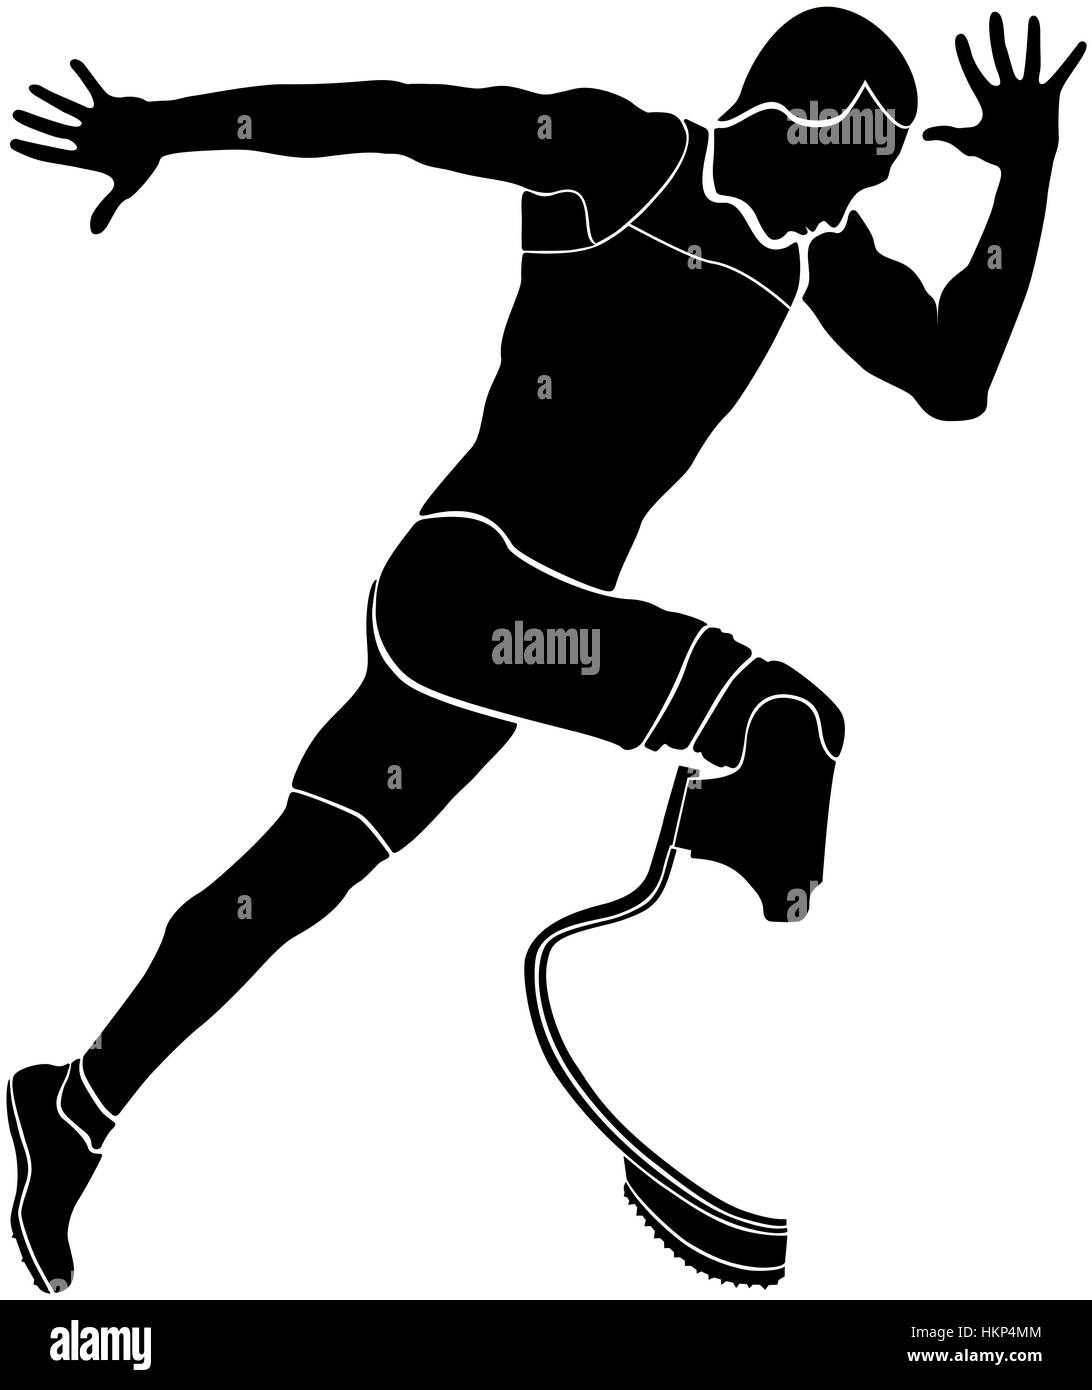 explosive runner athlete disabled amputee black silhouette - Stock Image